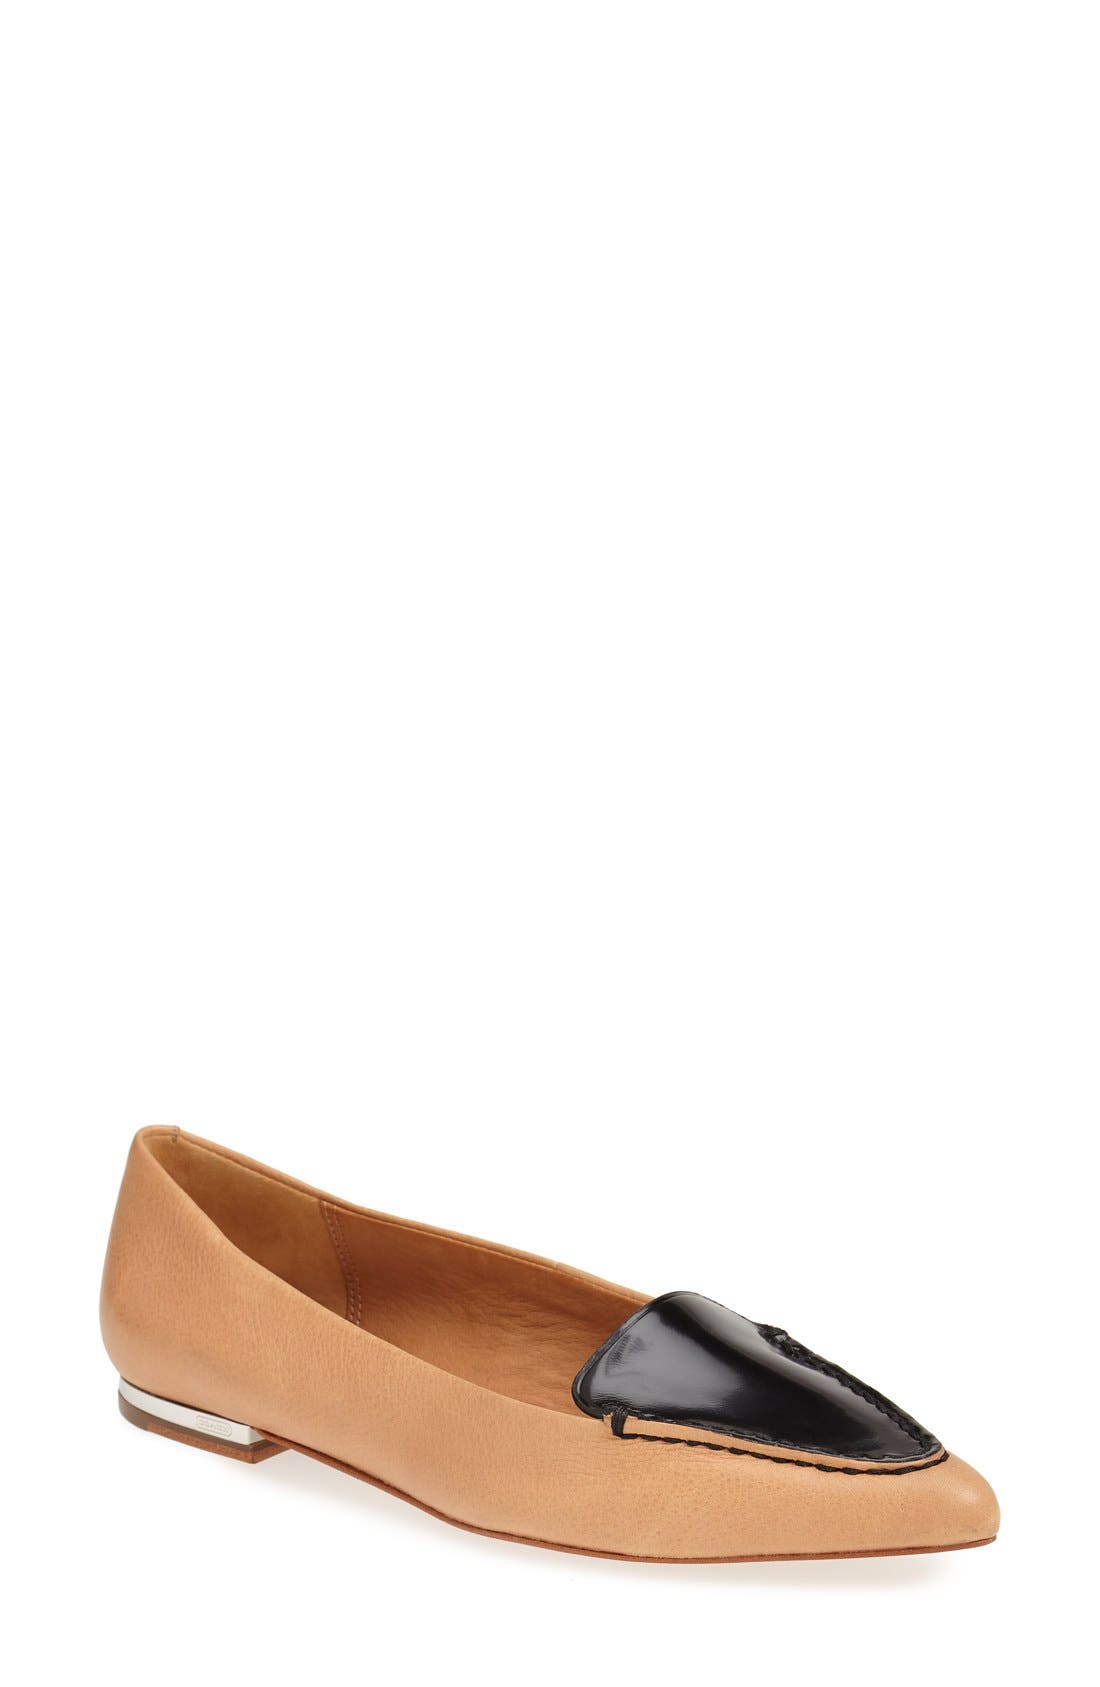 Alternate Image 1 Selected - COACH 'Walsh' Leather Loafer (Women)